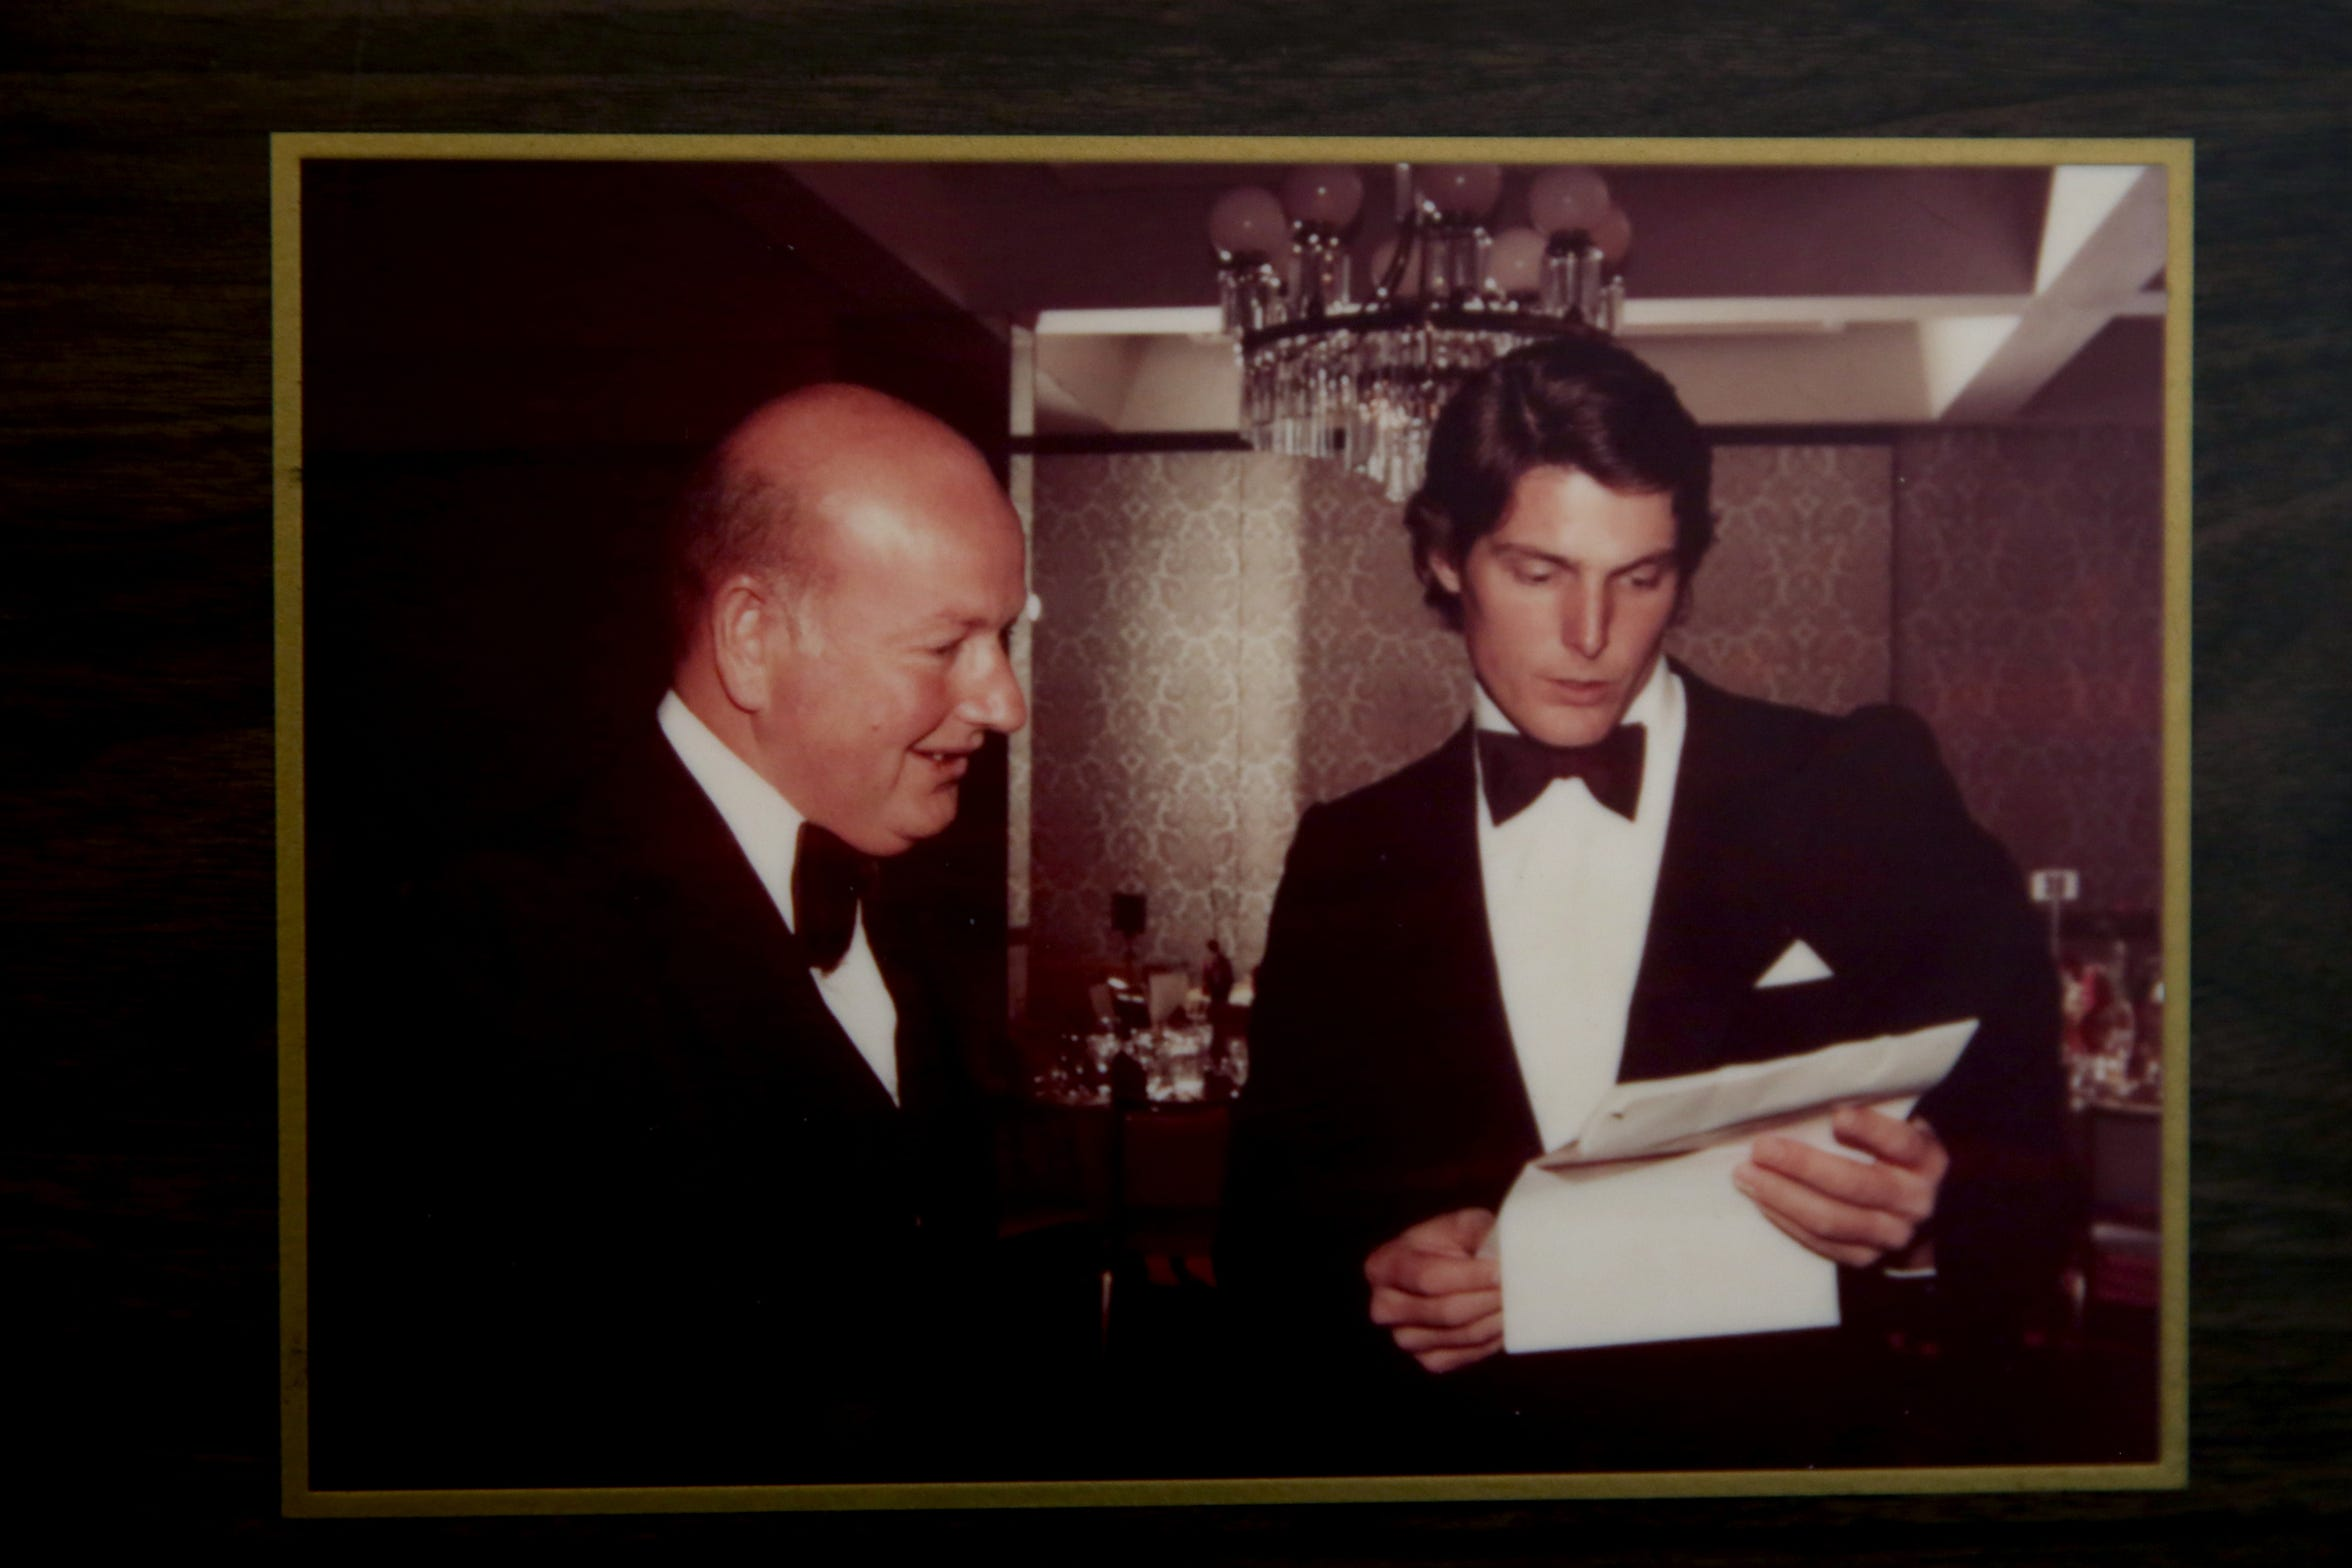 Memorabilia from his career in film, including a photo with Christopher Reeve, is displayed at Don Rogers' home near Salem on Wednesday, Feb. 6, 2019. He received an Oscar for lifetime achievement in sound in 1996.